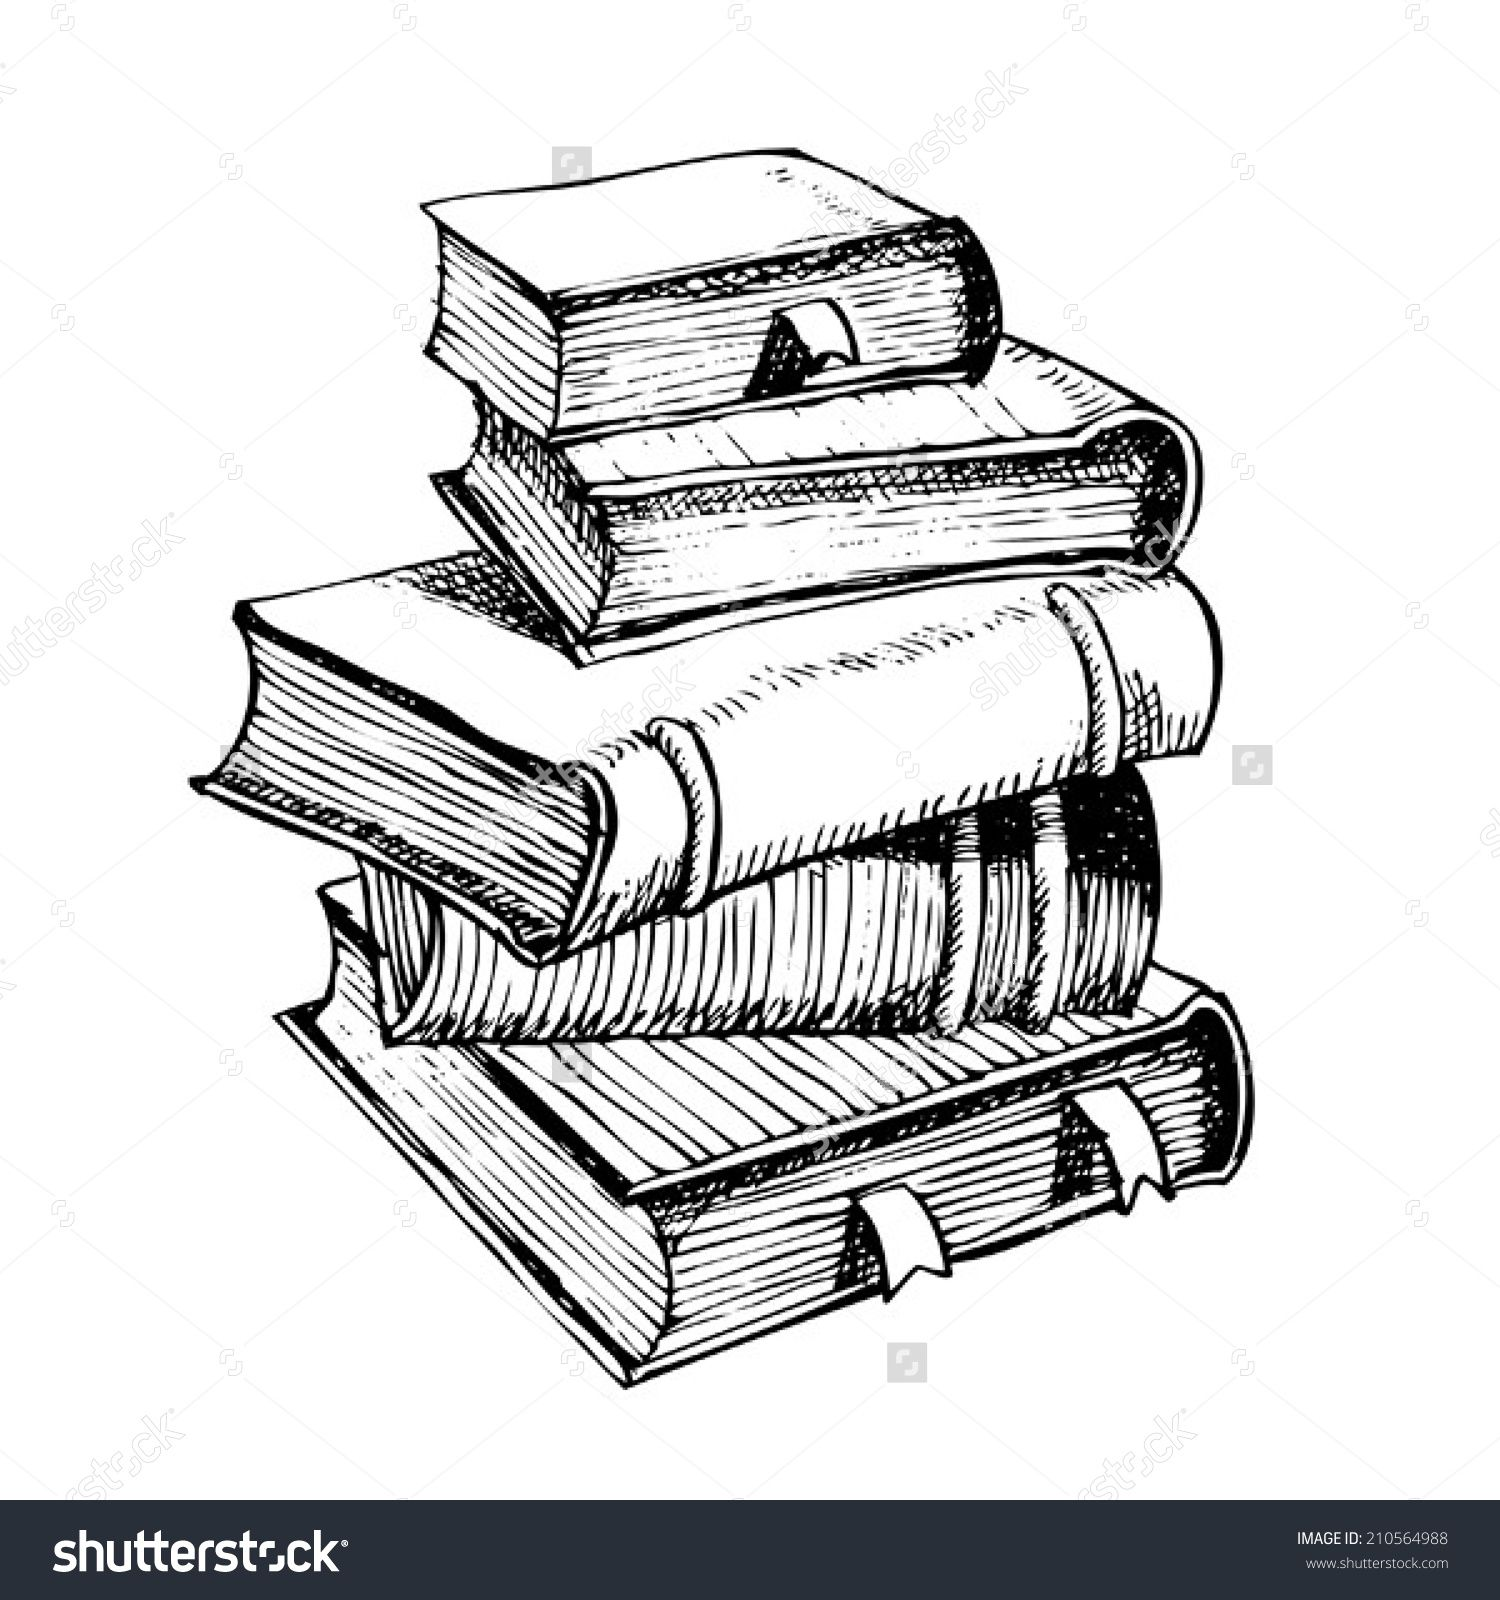 Pen Drawing A Pile Of Books Book Drawing Pen Drawing Pile Of Books